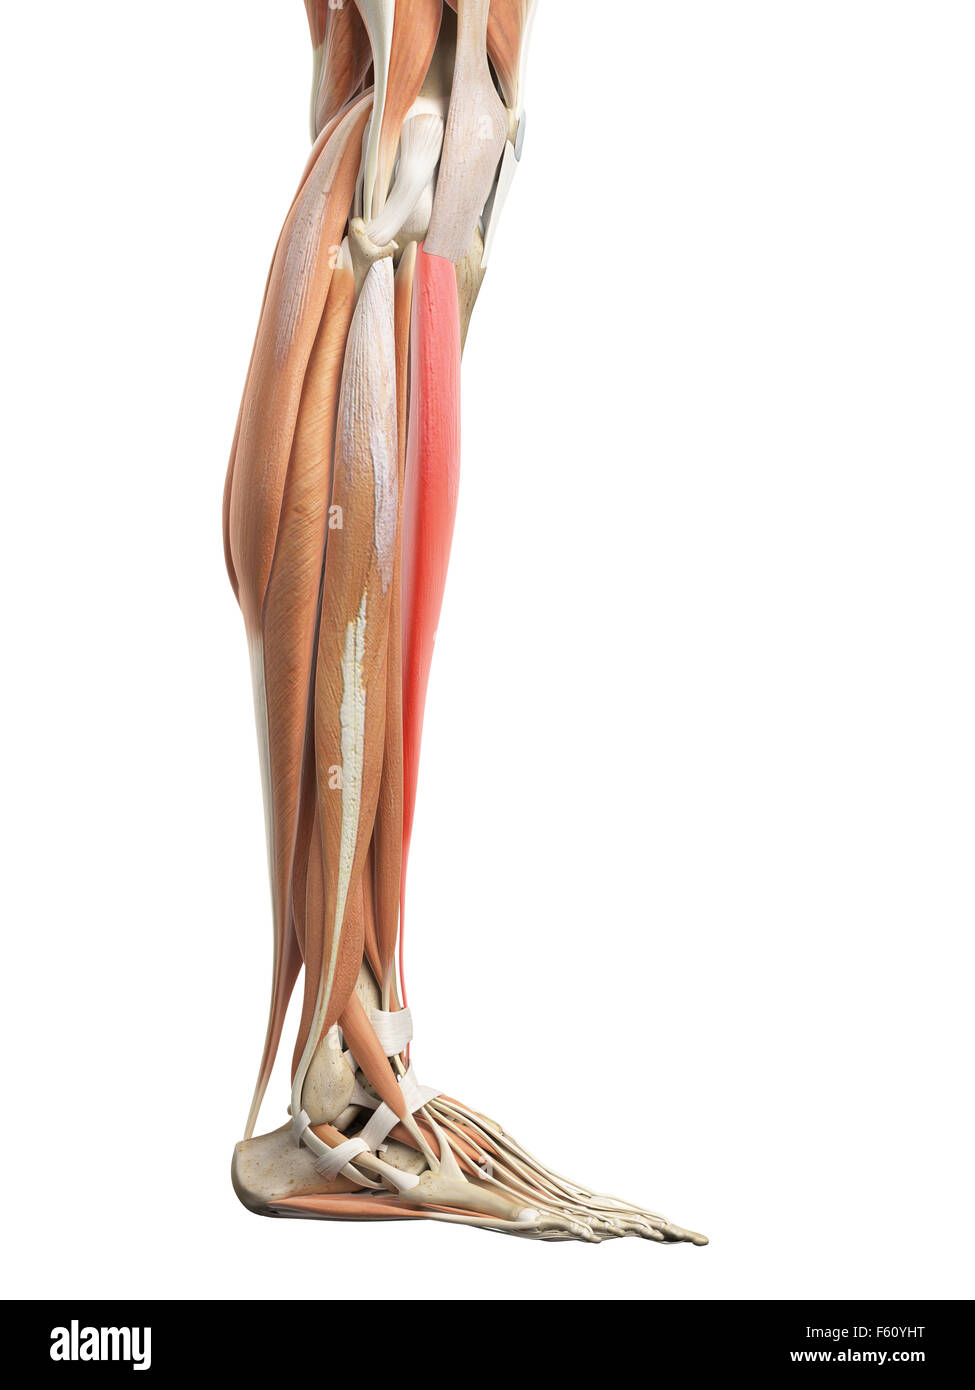 Tibialis Anterior Muscle Stock Photos & Tibialis Anterior Muscle ...